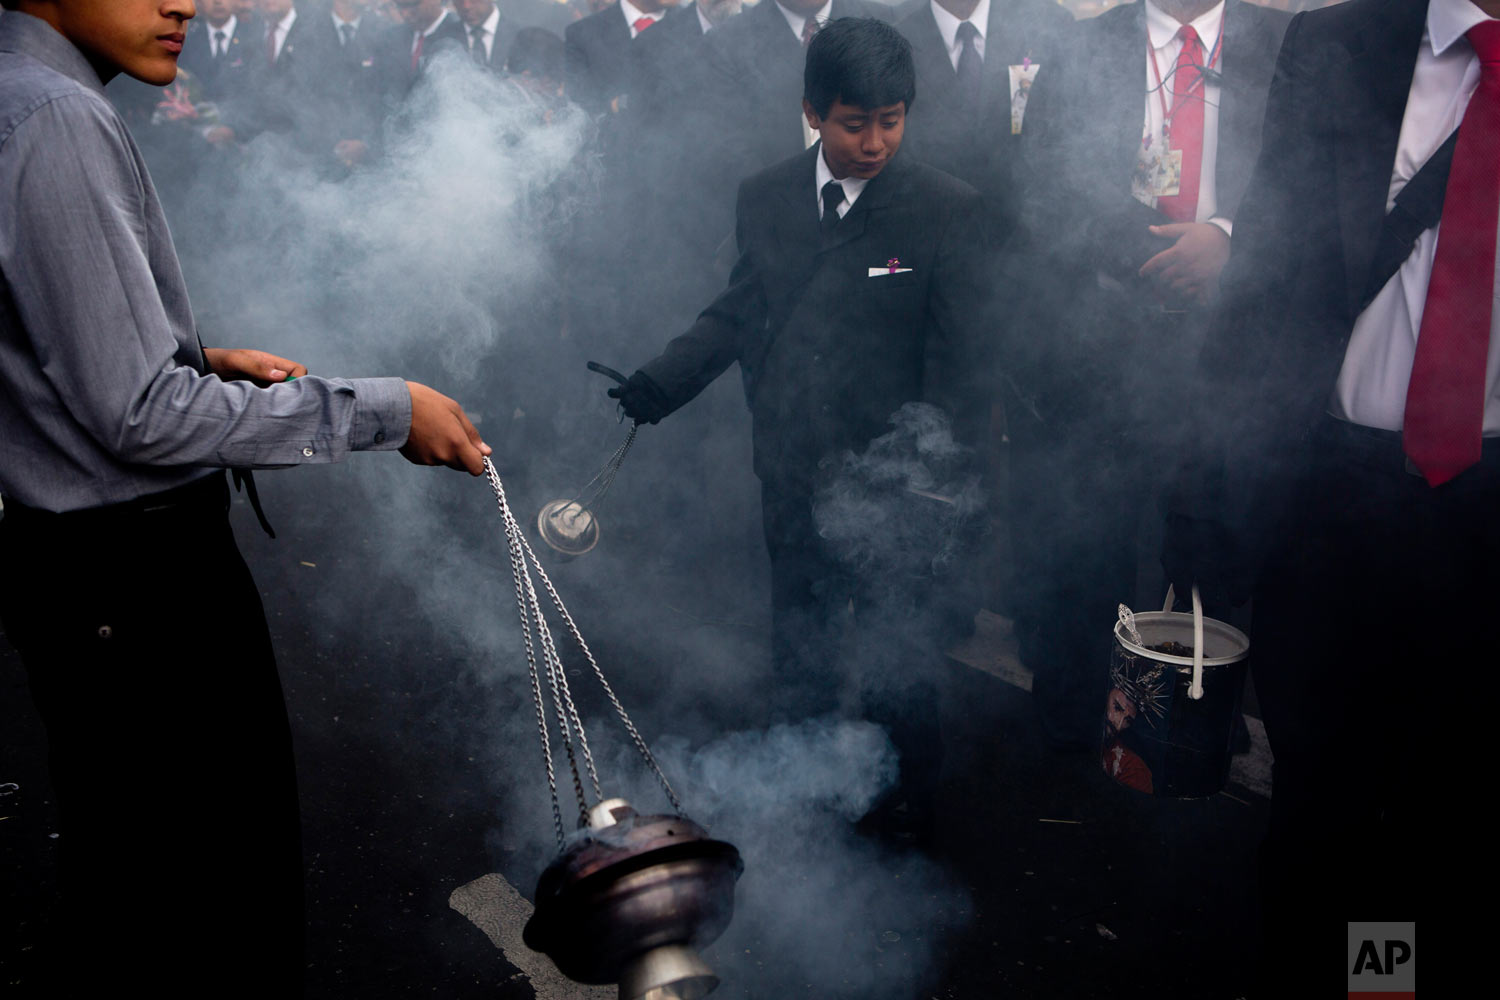 """Boys swing burners with incense purifying the path of the """"La Reseña,"""" procession known as """"La Reseña"""" in downtown Guatemala City, April 16, 2019. (AP Photo/Moises Castillo)"""